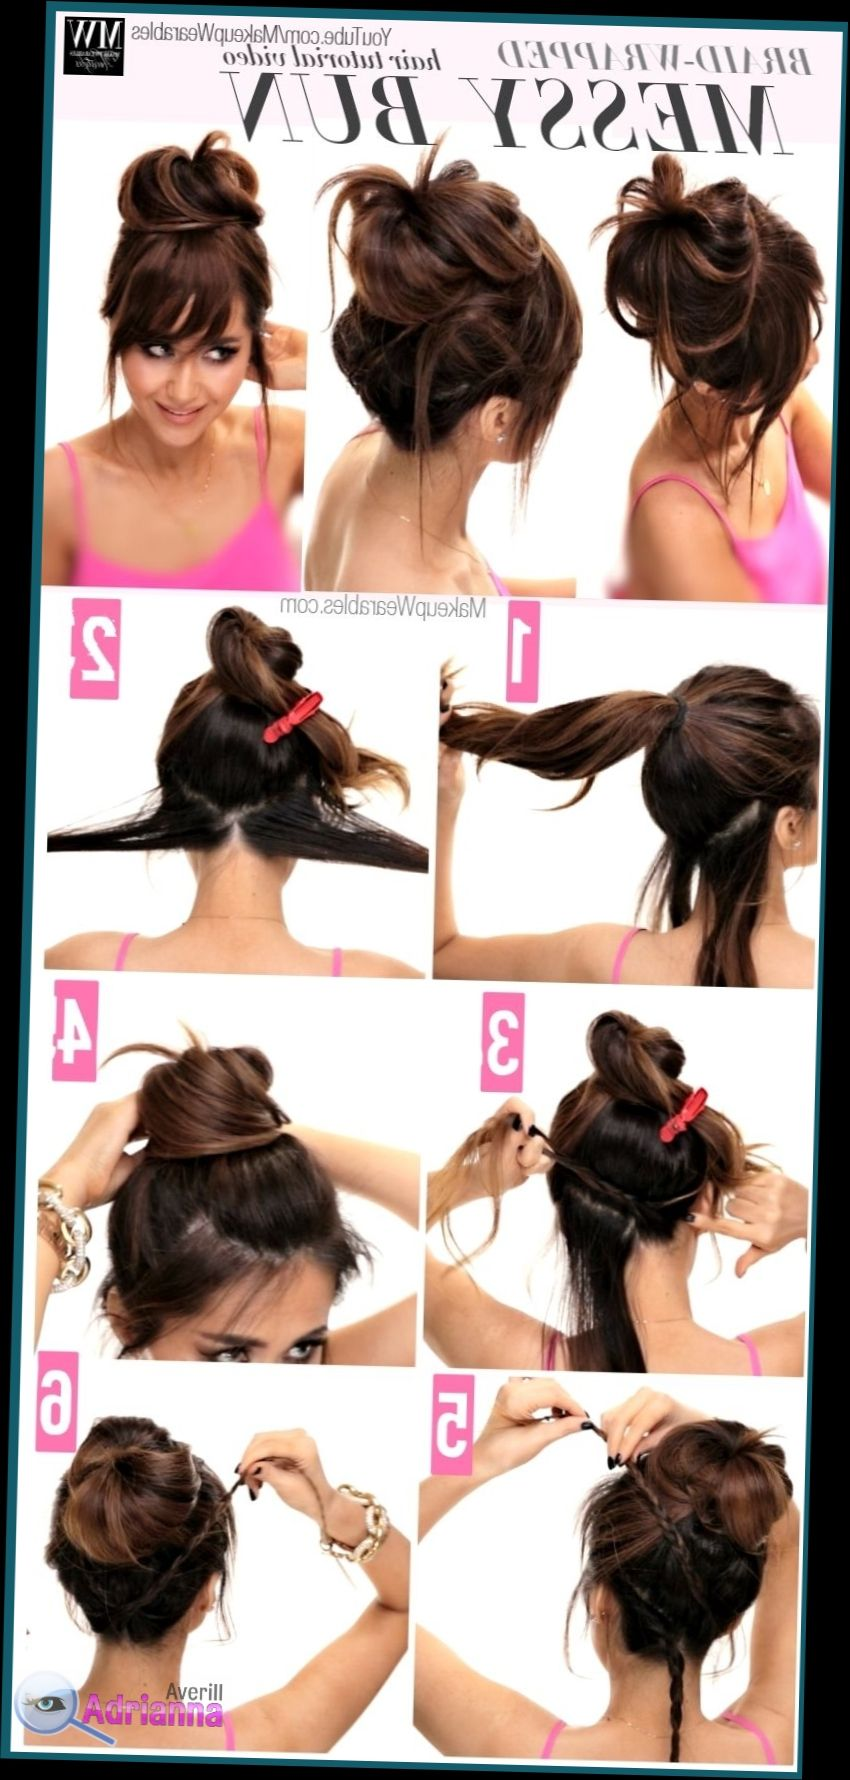 Simple Hairstyle For Saree Step By Step Juda Hairstyle For Saree Step By Step Deepika Padukone Hair Up Hair Styles Easy Hairstyles For Long Hair Hair Beauty